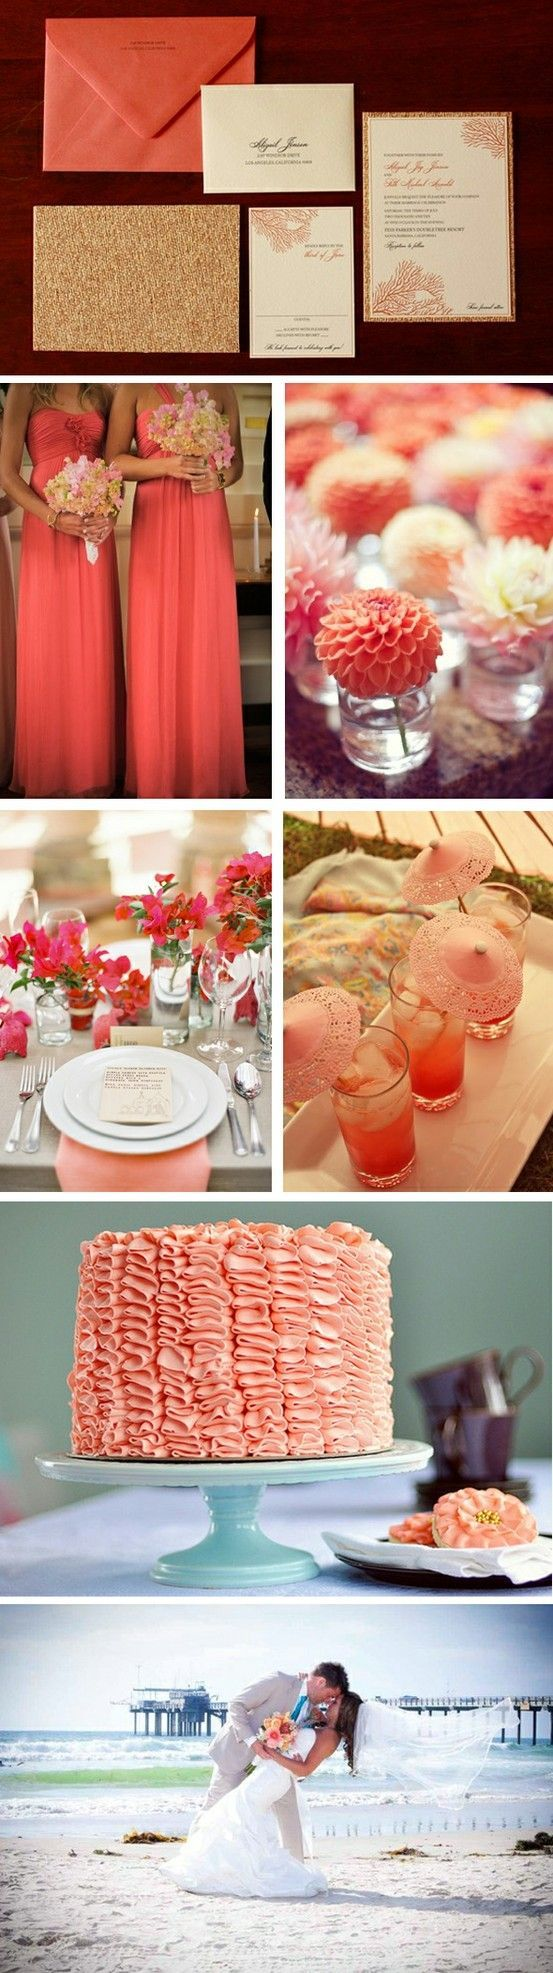 i would use the invitation ideas, but make them more glamourous. i would use the coral dresses as brides maid dresses, and the place setting is pretty as well. #turquoisecoralweddings i would use the invitation ideas, but make them more glamourous. i would use the coral dresses as brides maid dresses, and the place setting is pretty as well. #turquoisecoralweddings